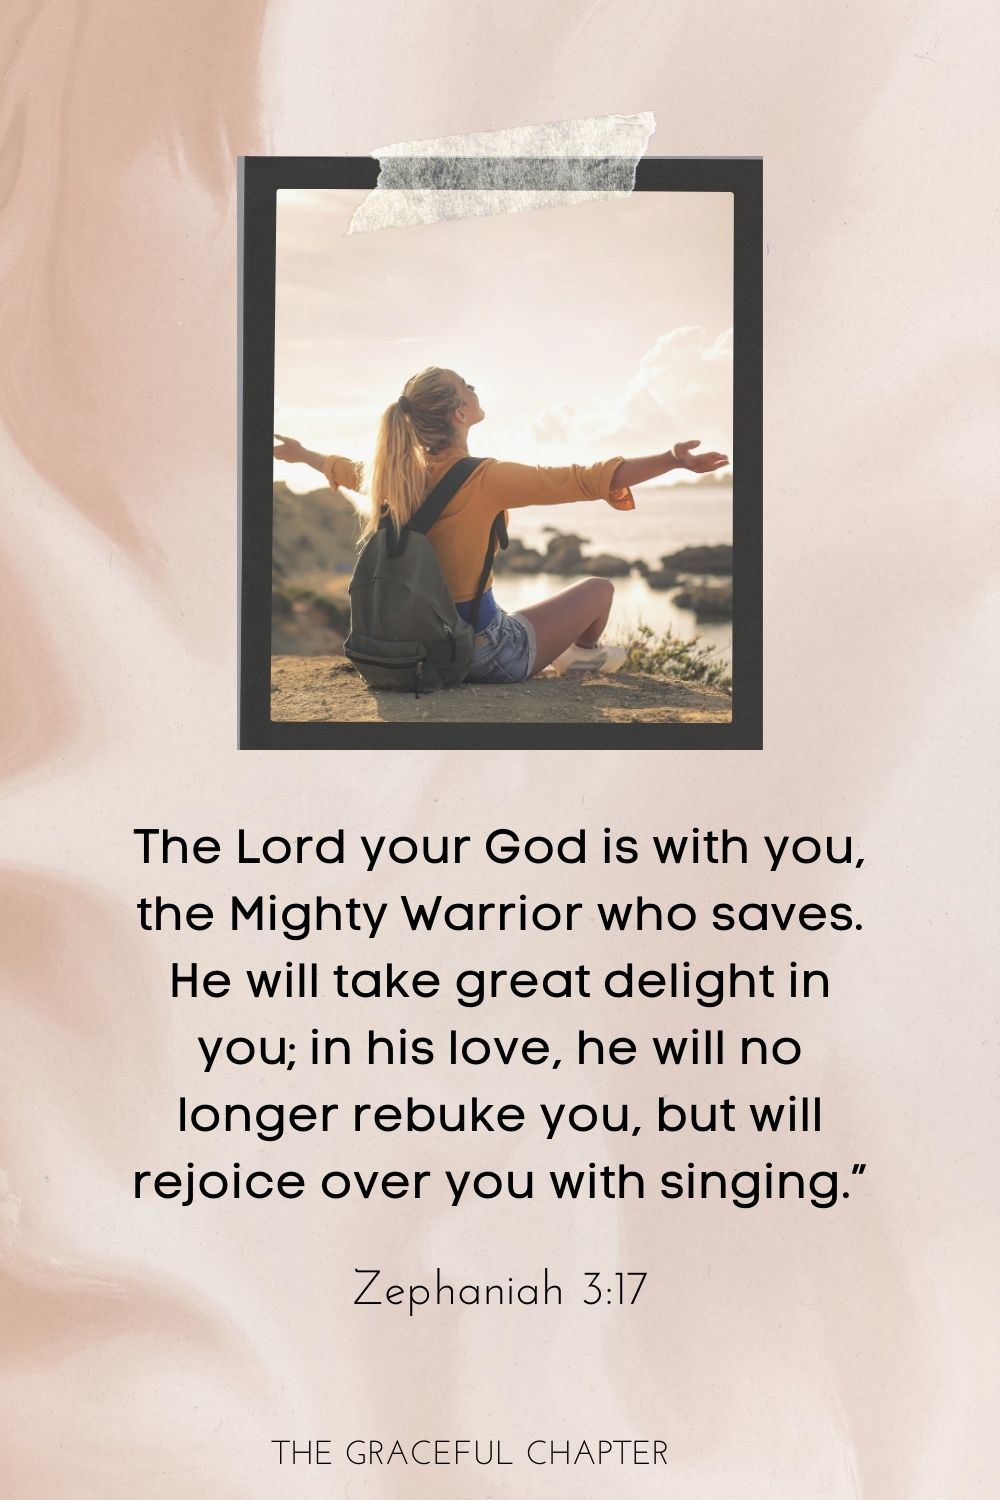 "The Lord your God is with you, the Mighty Warrior who saves. He will take great delight in you; in his love he will no longer rebuke you, but will rejoice over you with singing."" Zephaniah 3:17"